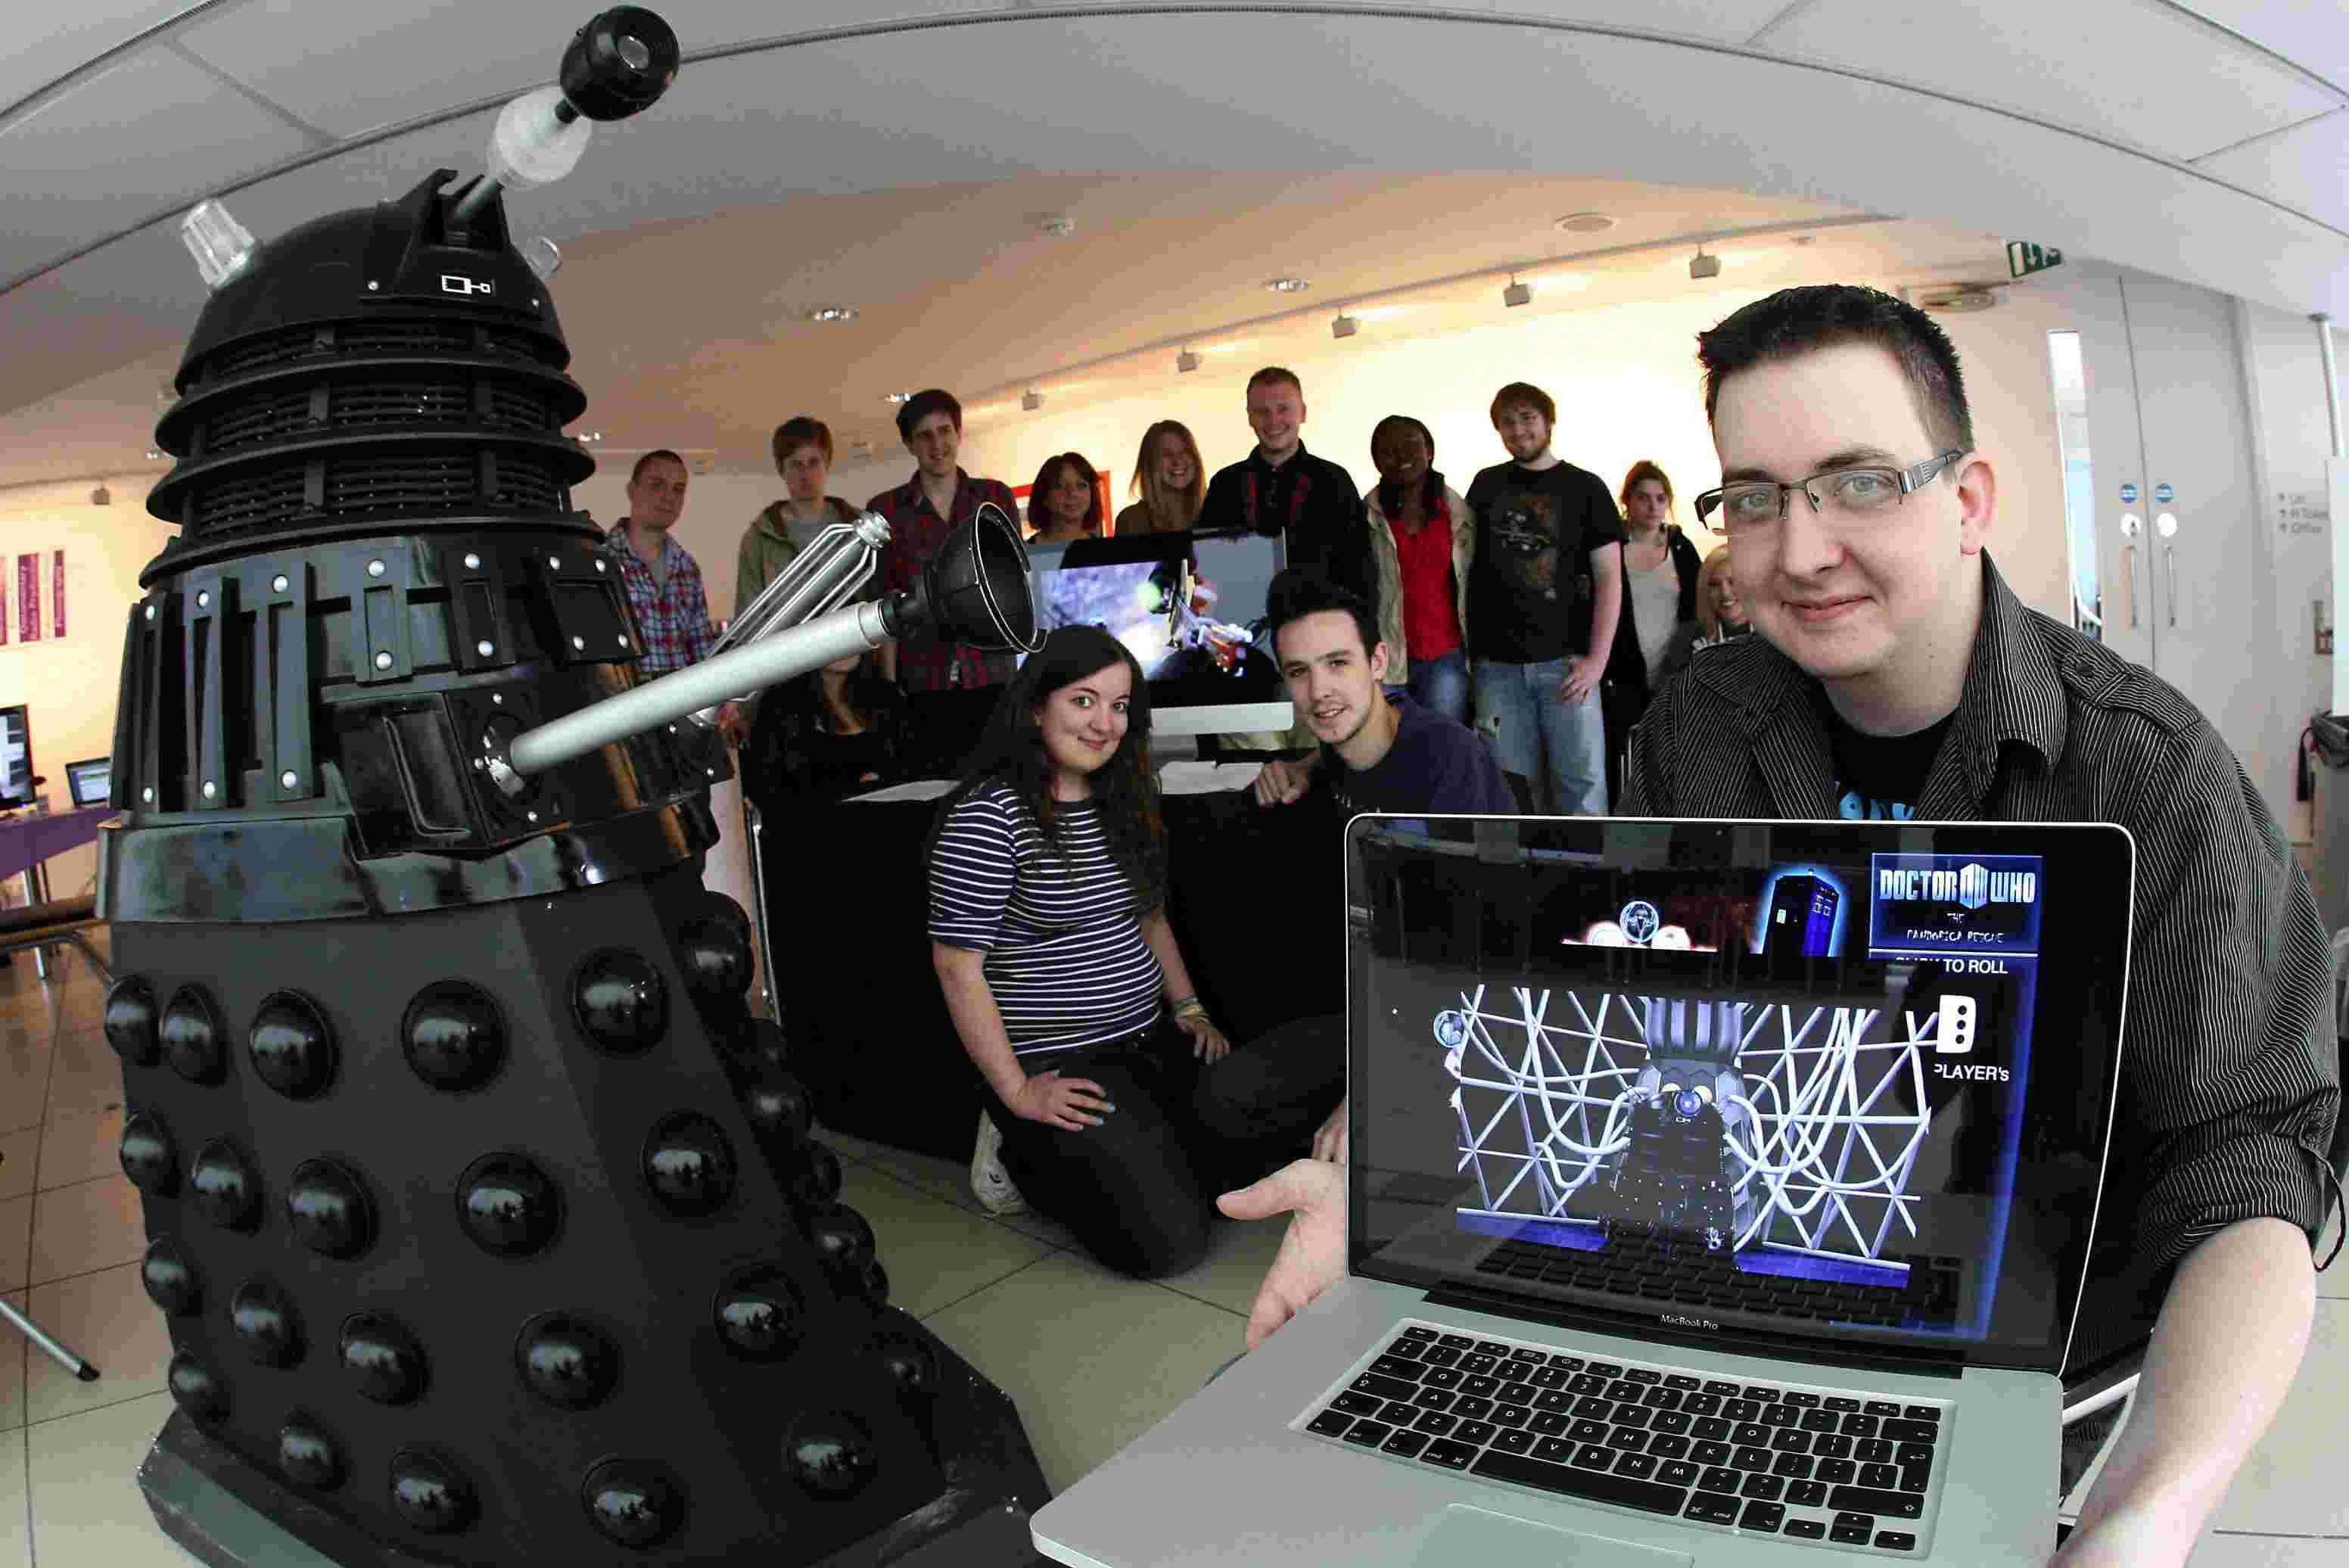 Digital media student Doug Inman with his lifesize Dalek that features in a video game he produced